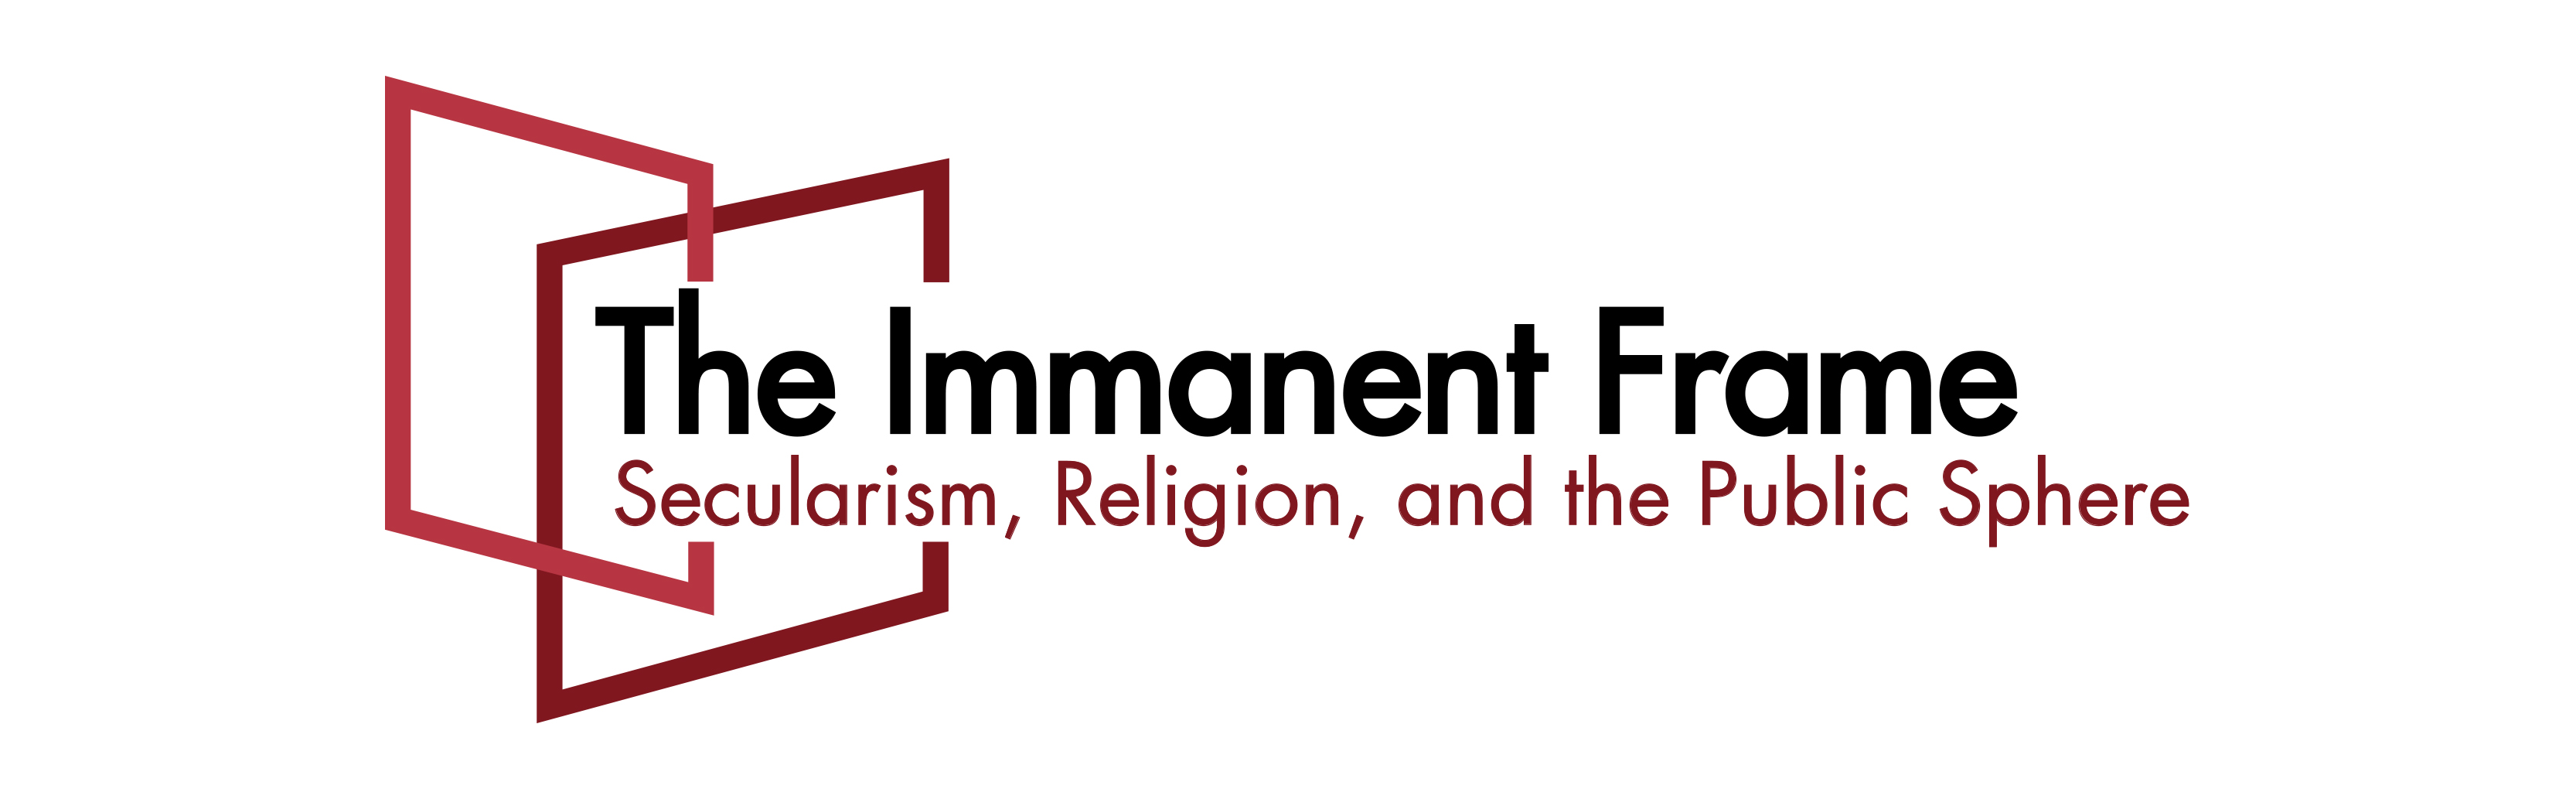 The Immanent Frame logo